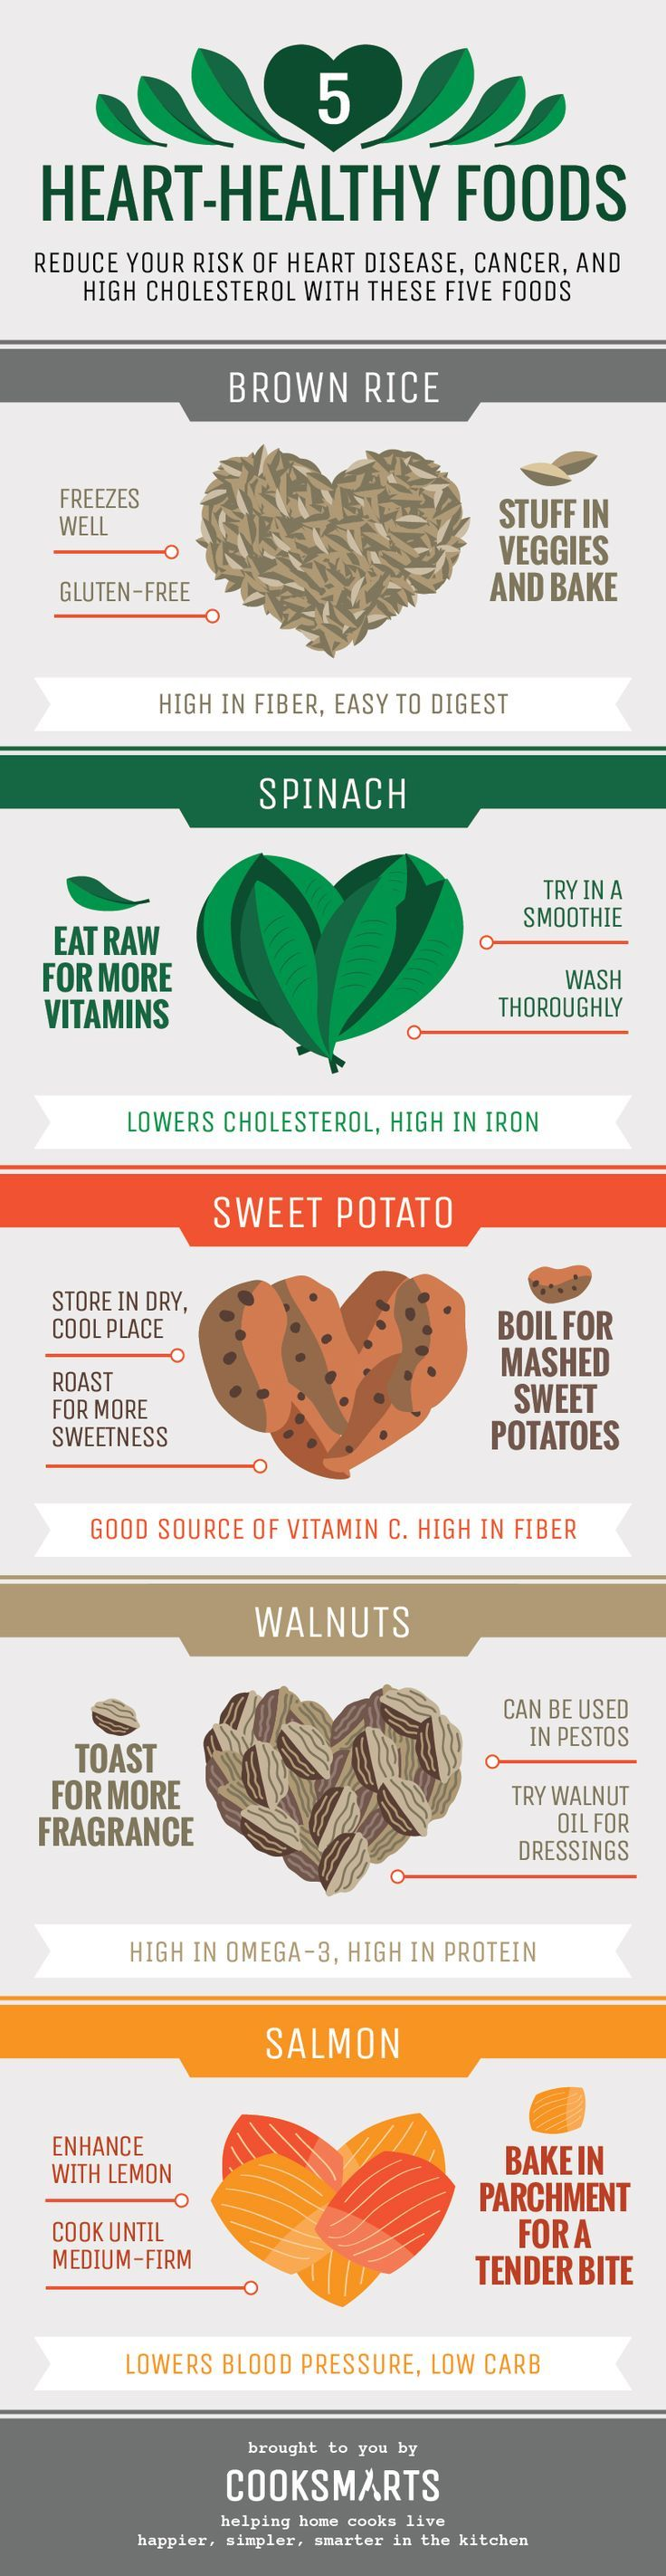 Treat Yourself Right with 5 Heart-Healthy Foods via /cooksmarts/ #infographic